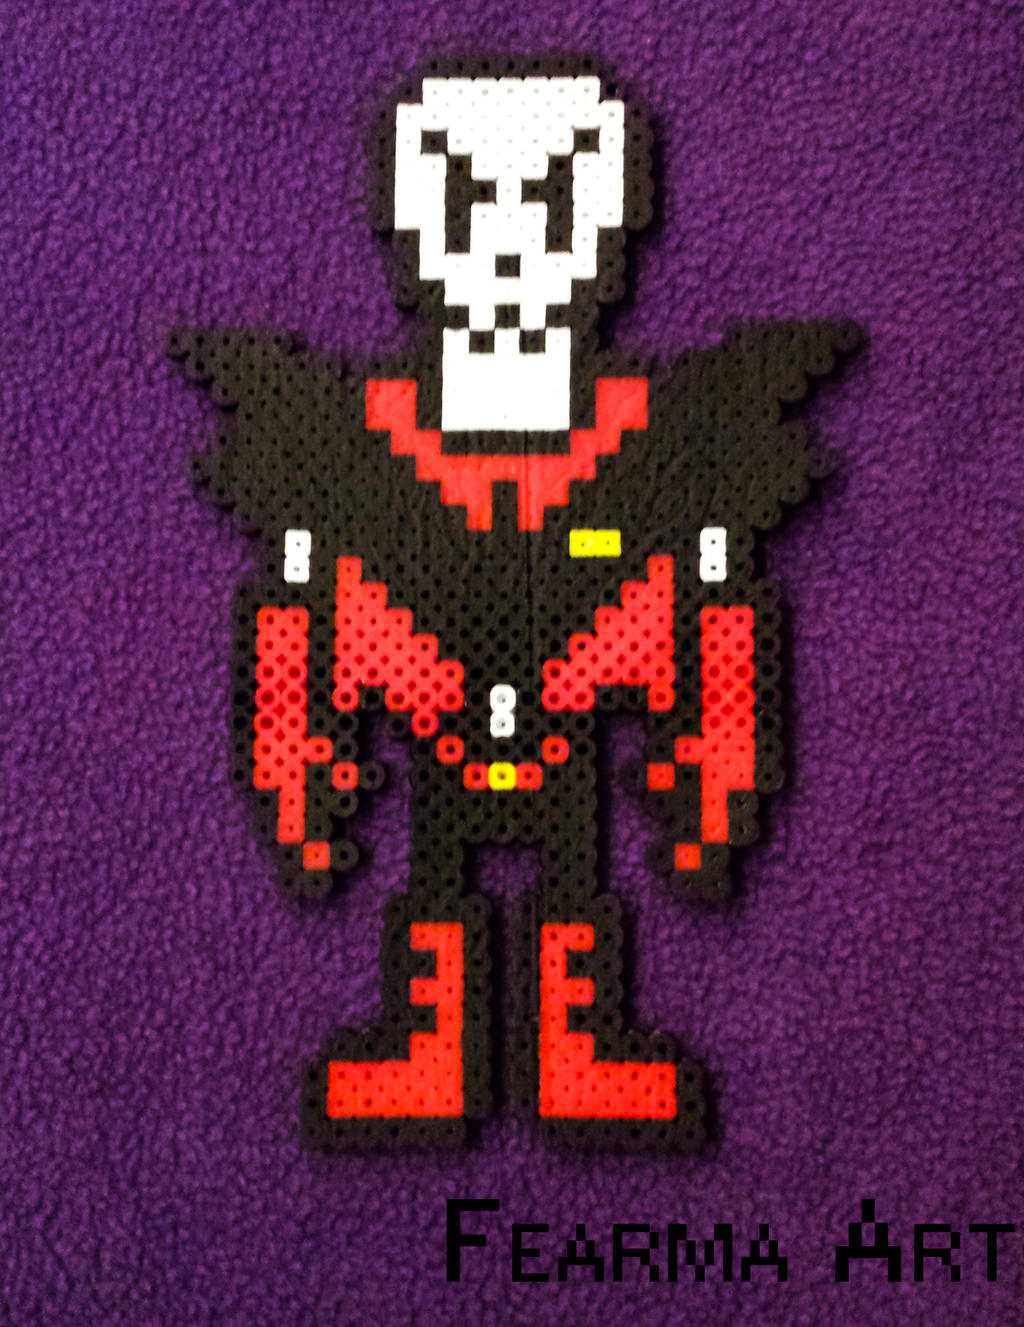 Pixel Papyrus Rfell Related Keywords & Suggestions - Pixel